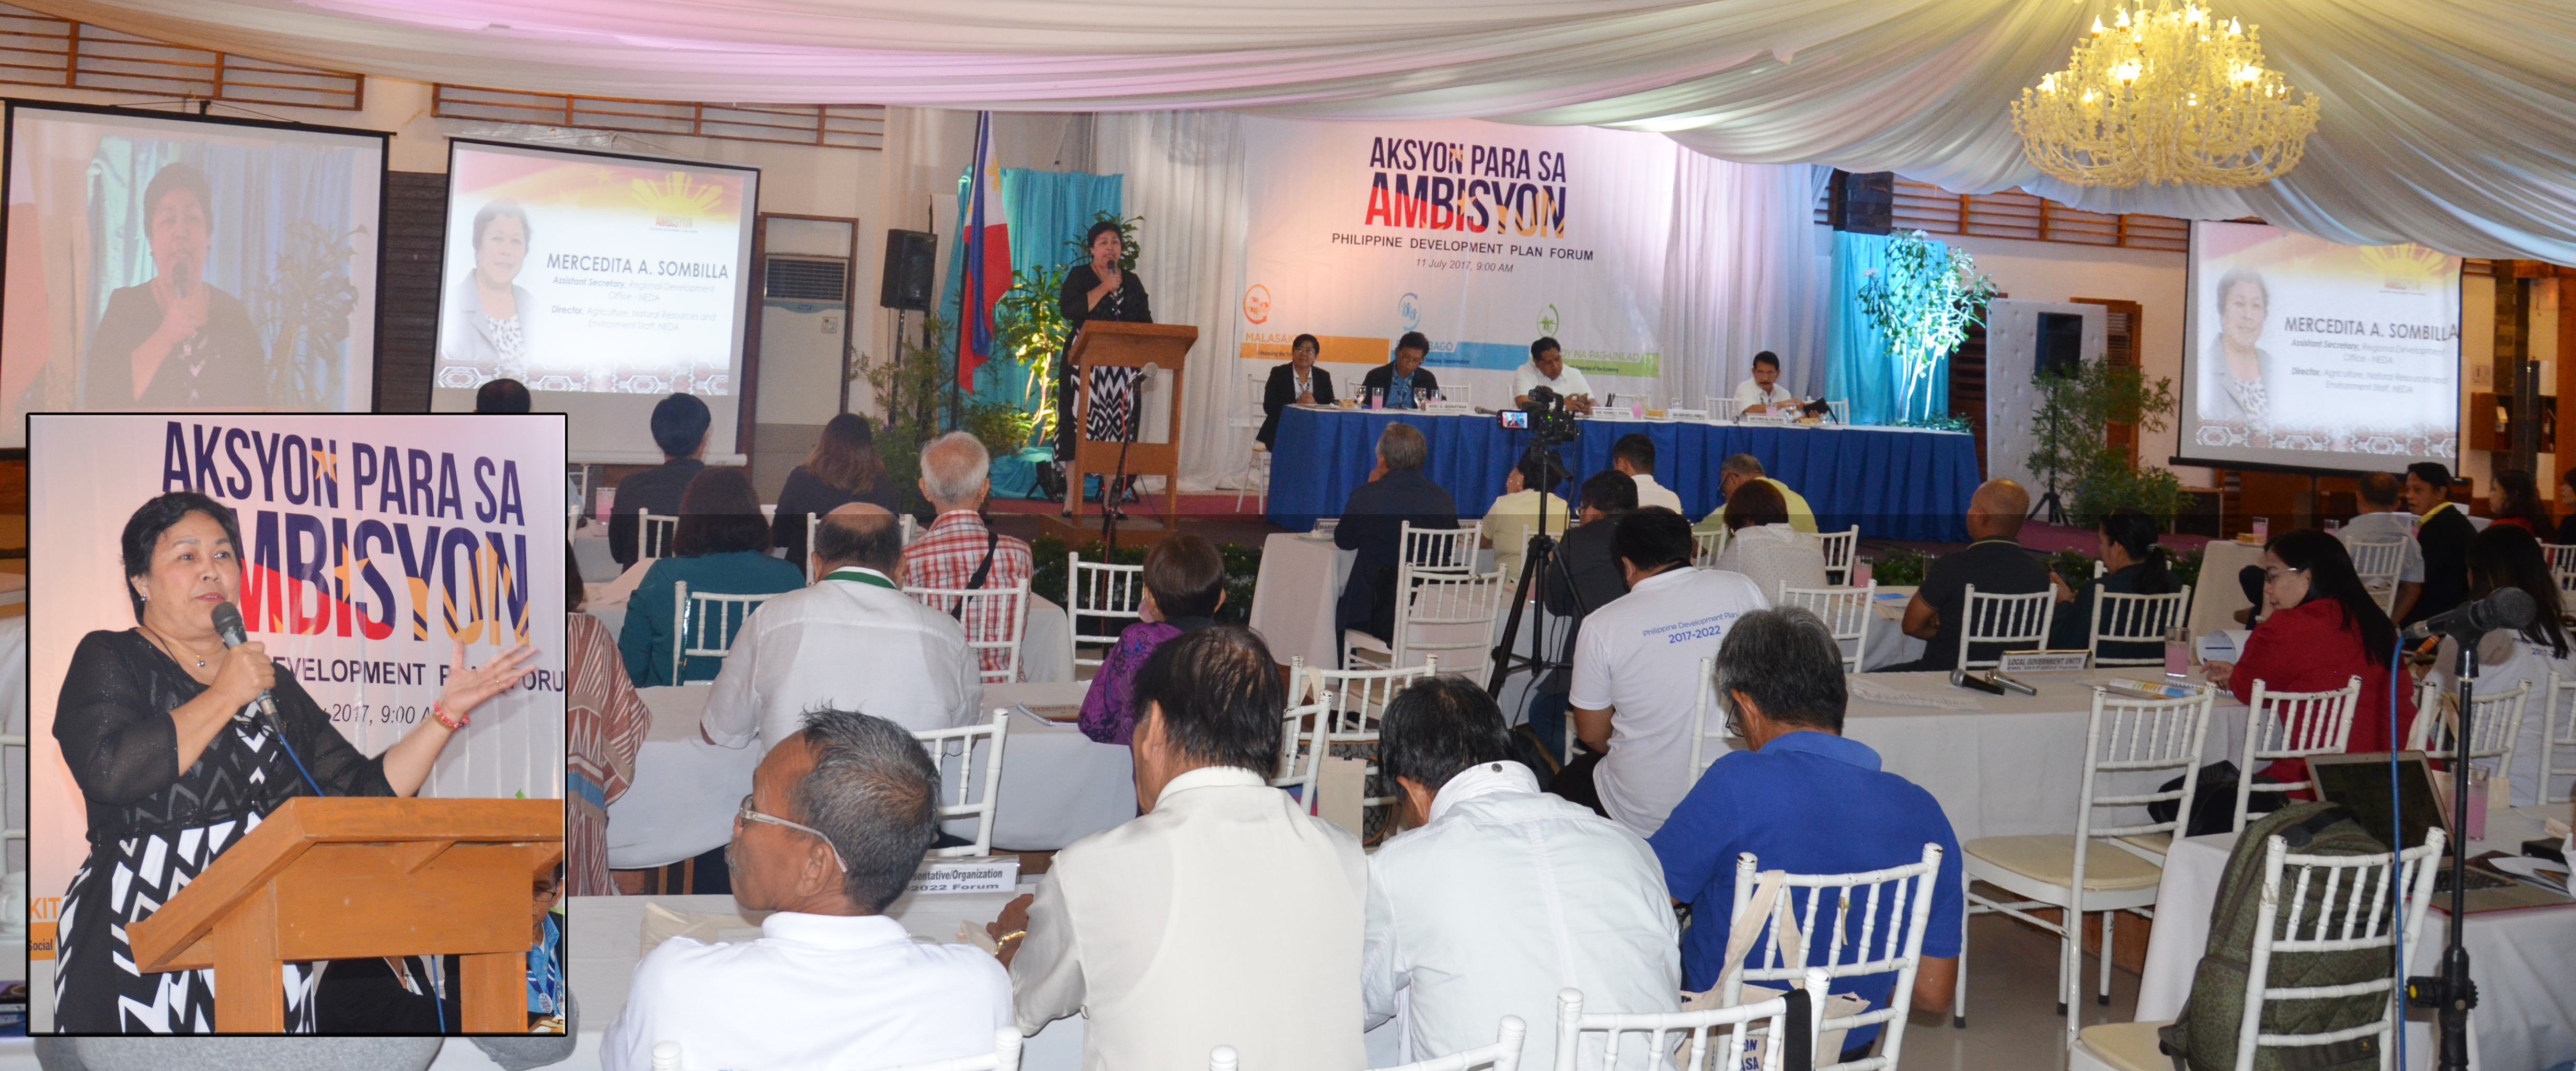 National Economic and Development Authority (NEDA) Assistant Secretary Mercedita A. Sombilla (inset) in her keynote message during the SOCCSKSARGEN Aksyon para sa Ambisyon Philippine Development Plan Forum on July 11, 2017 in Koronadal City.